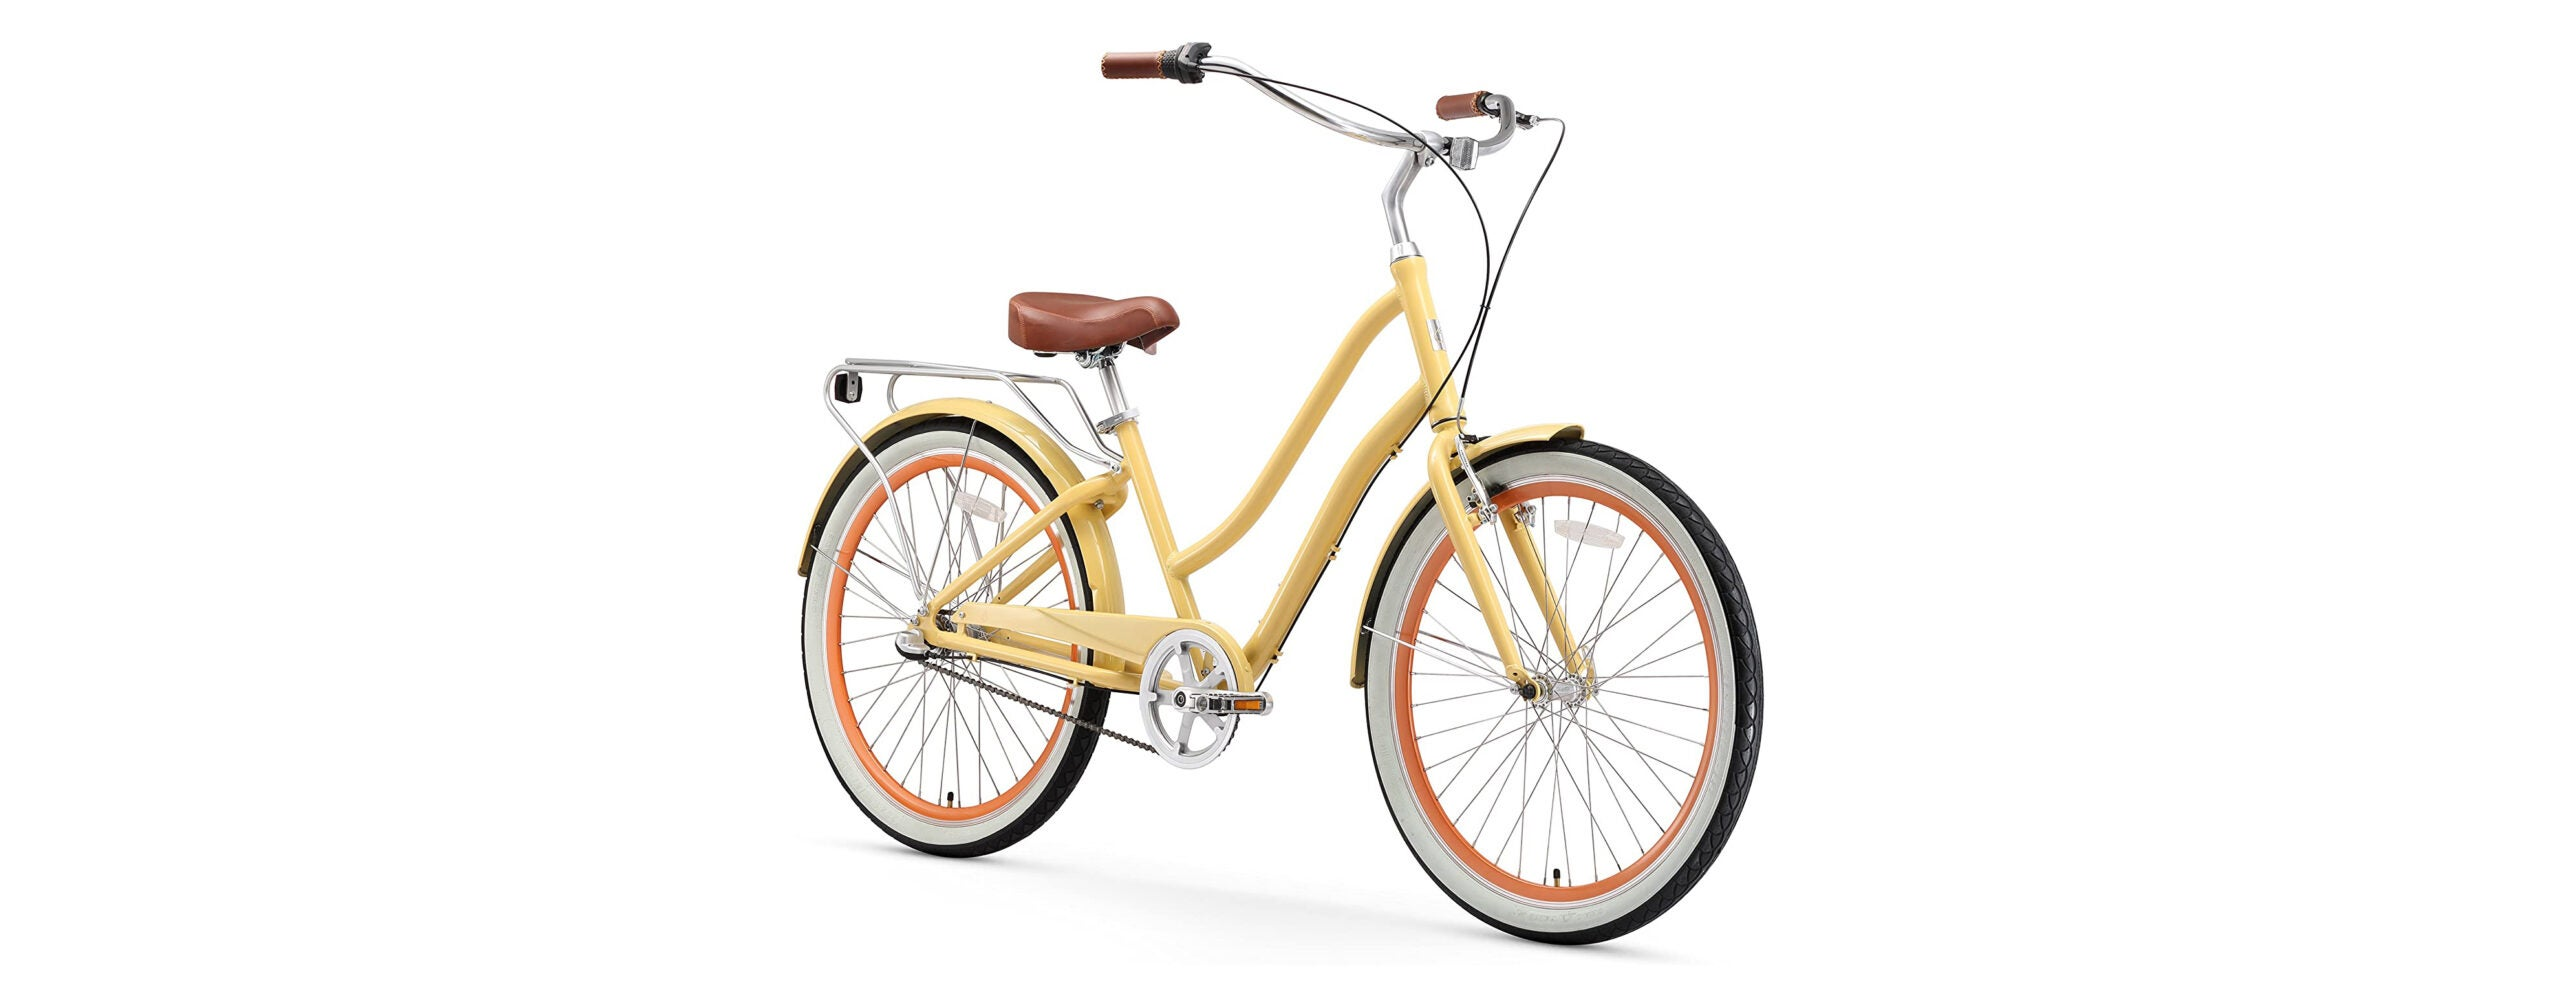 The Best 3-Speed Bikes (Review & Buying Guide) in 2021